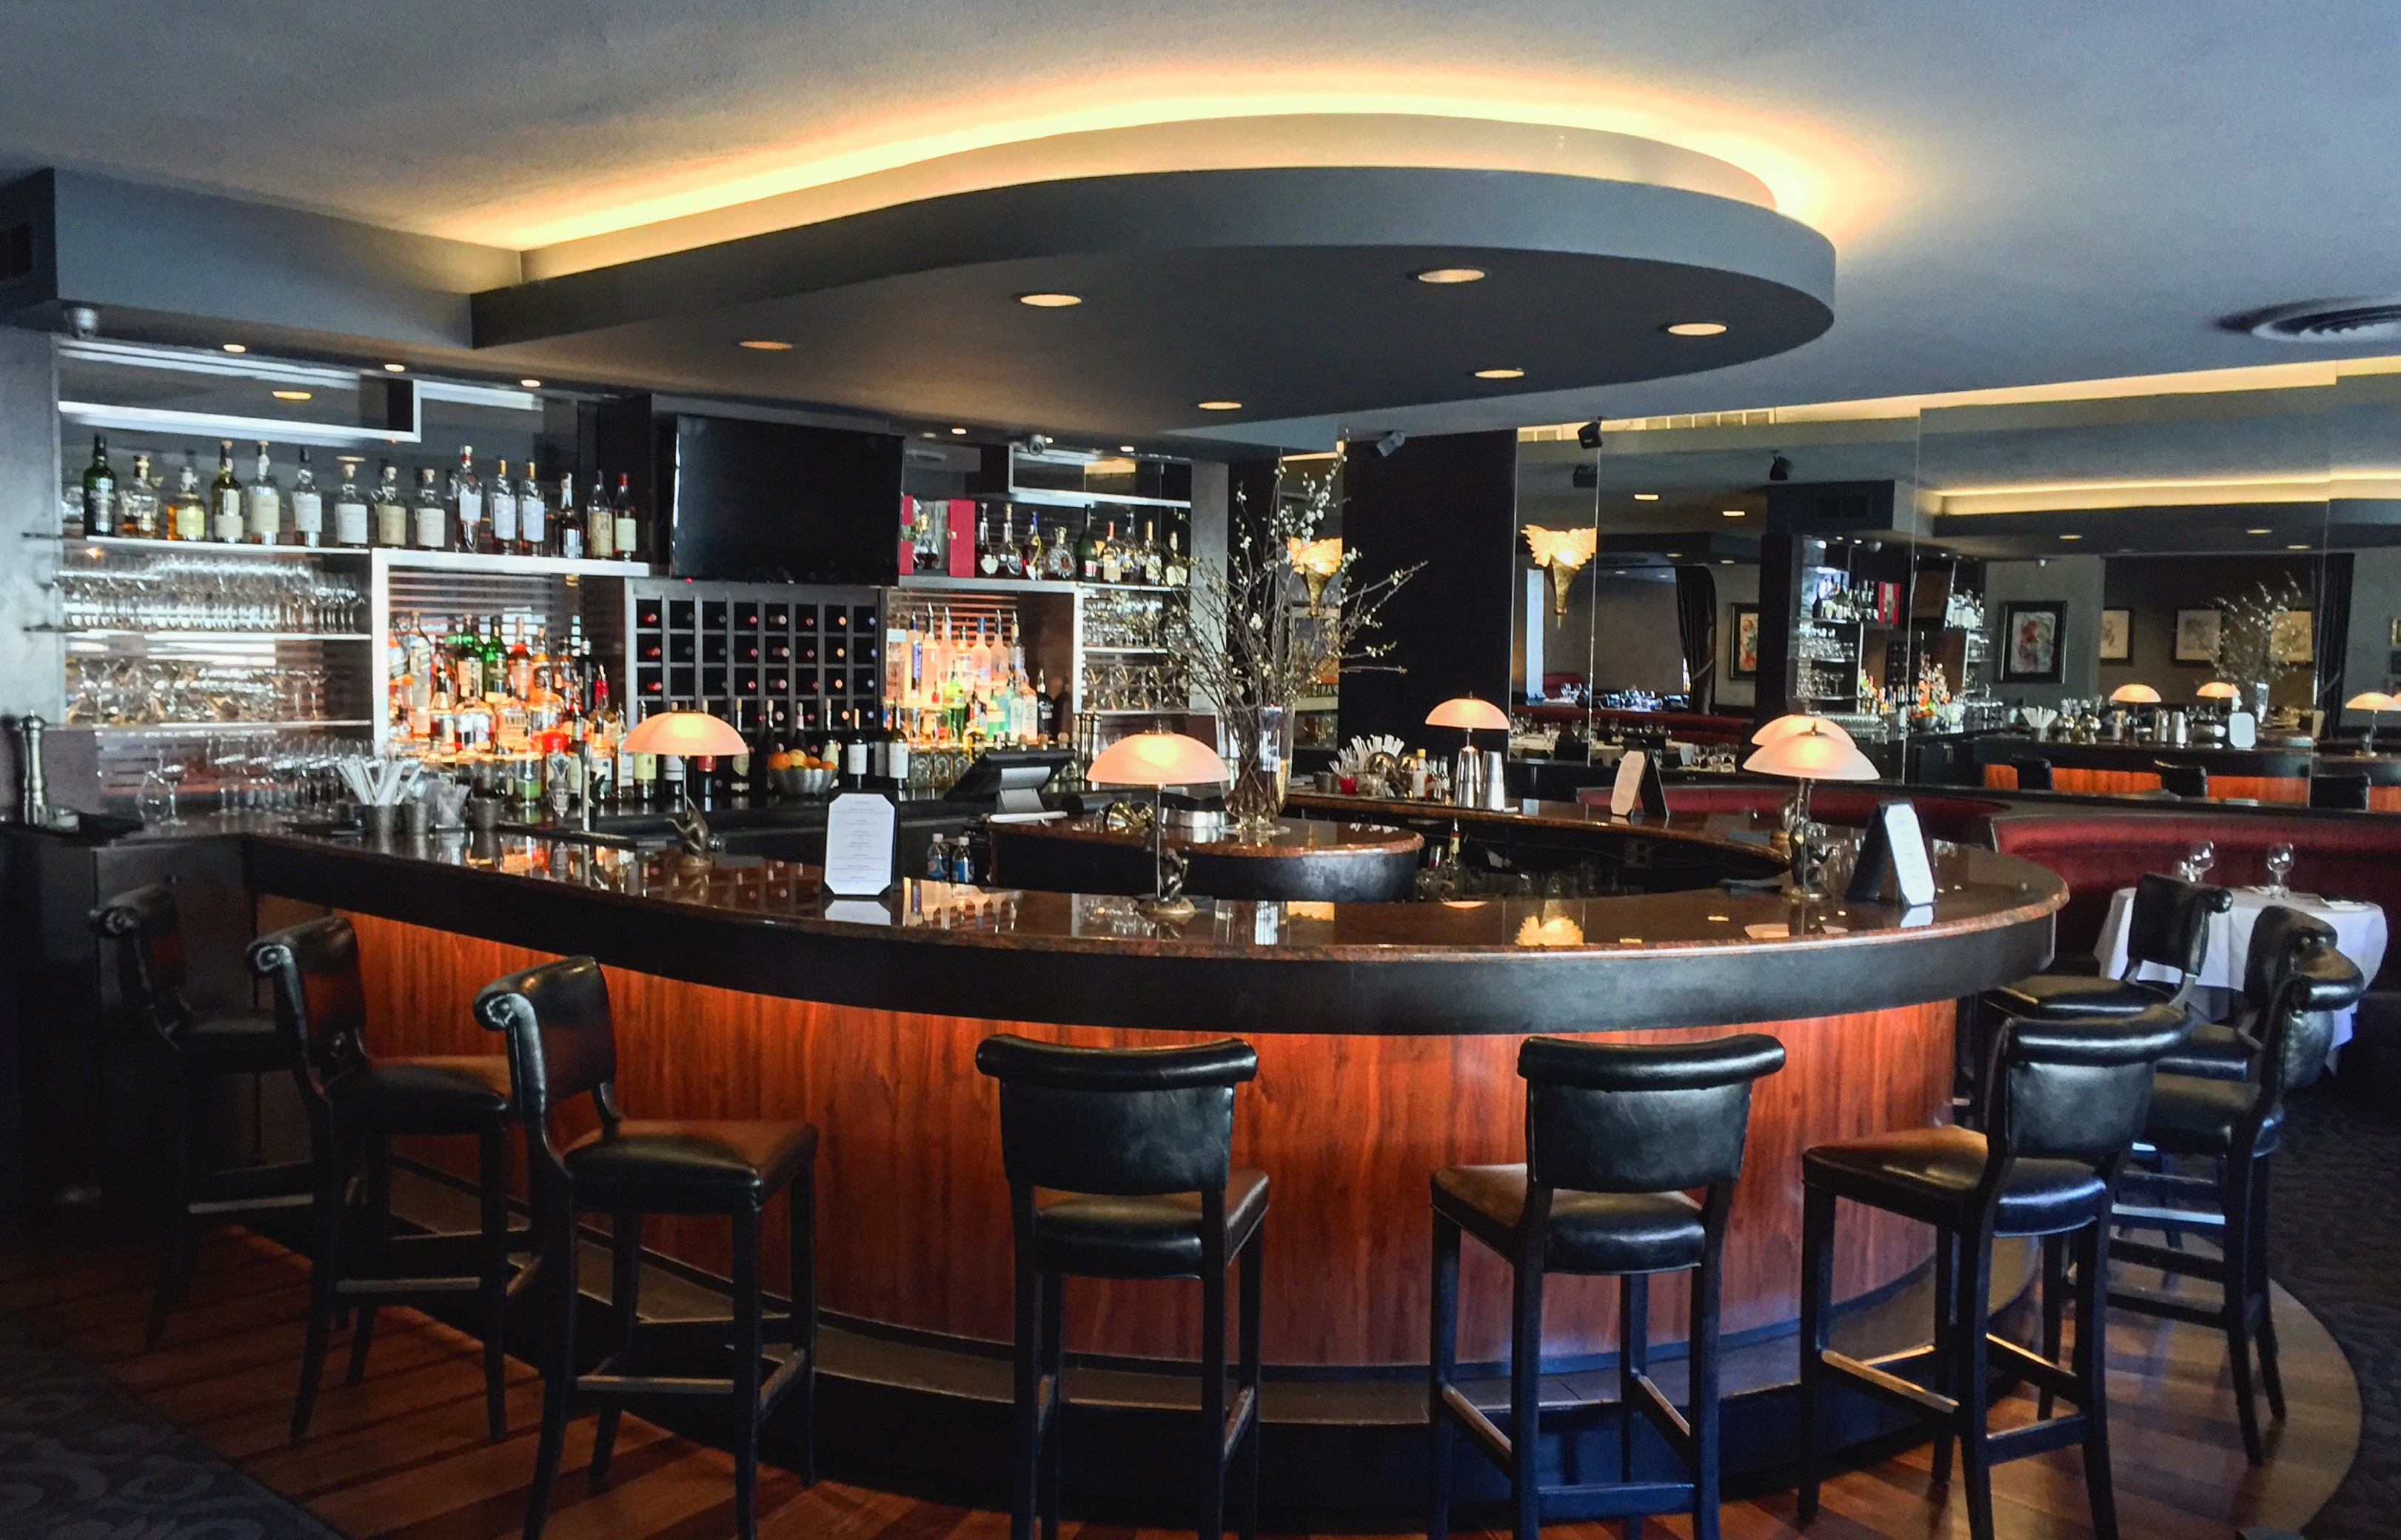 A spiffed-up backbar is one of the updates Oliver's has undertaken for its 80th anniversary. (Photo: Mike Ciancio)